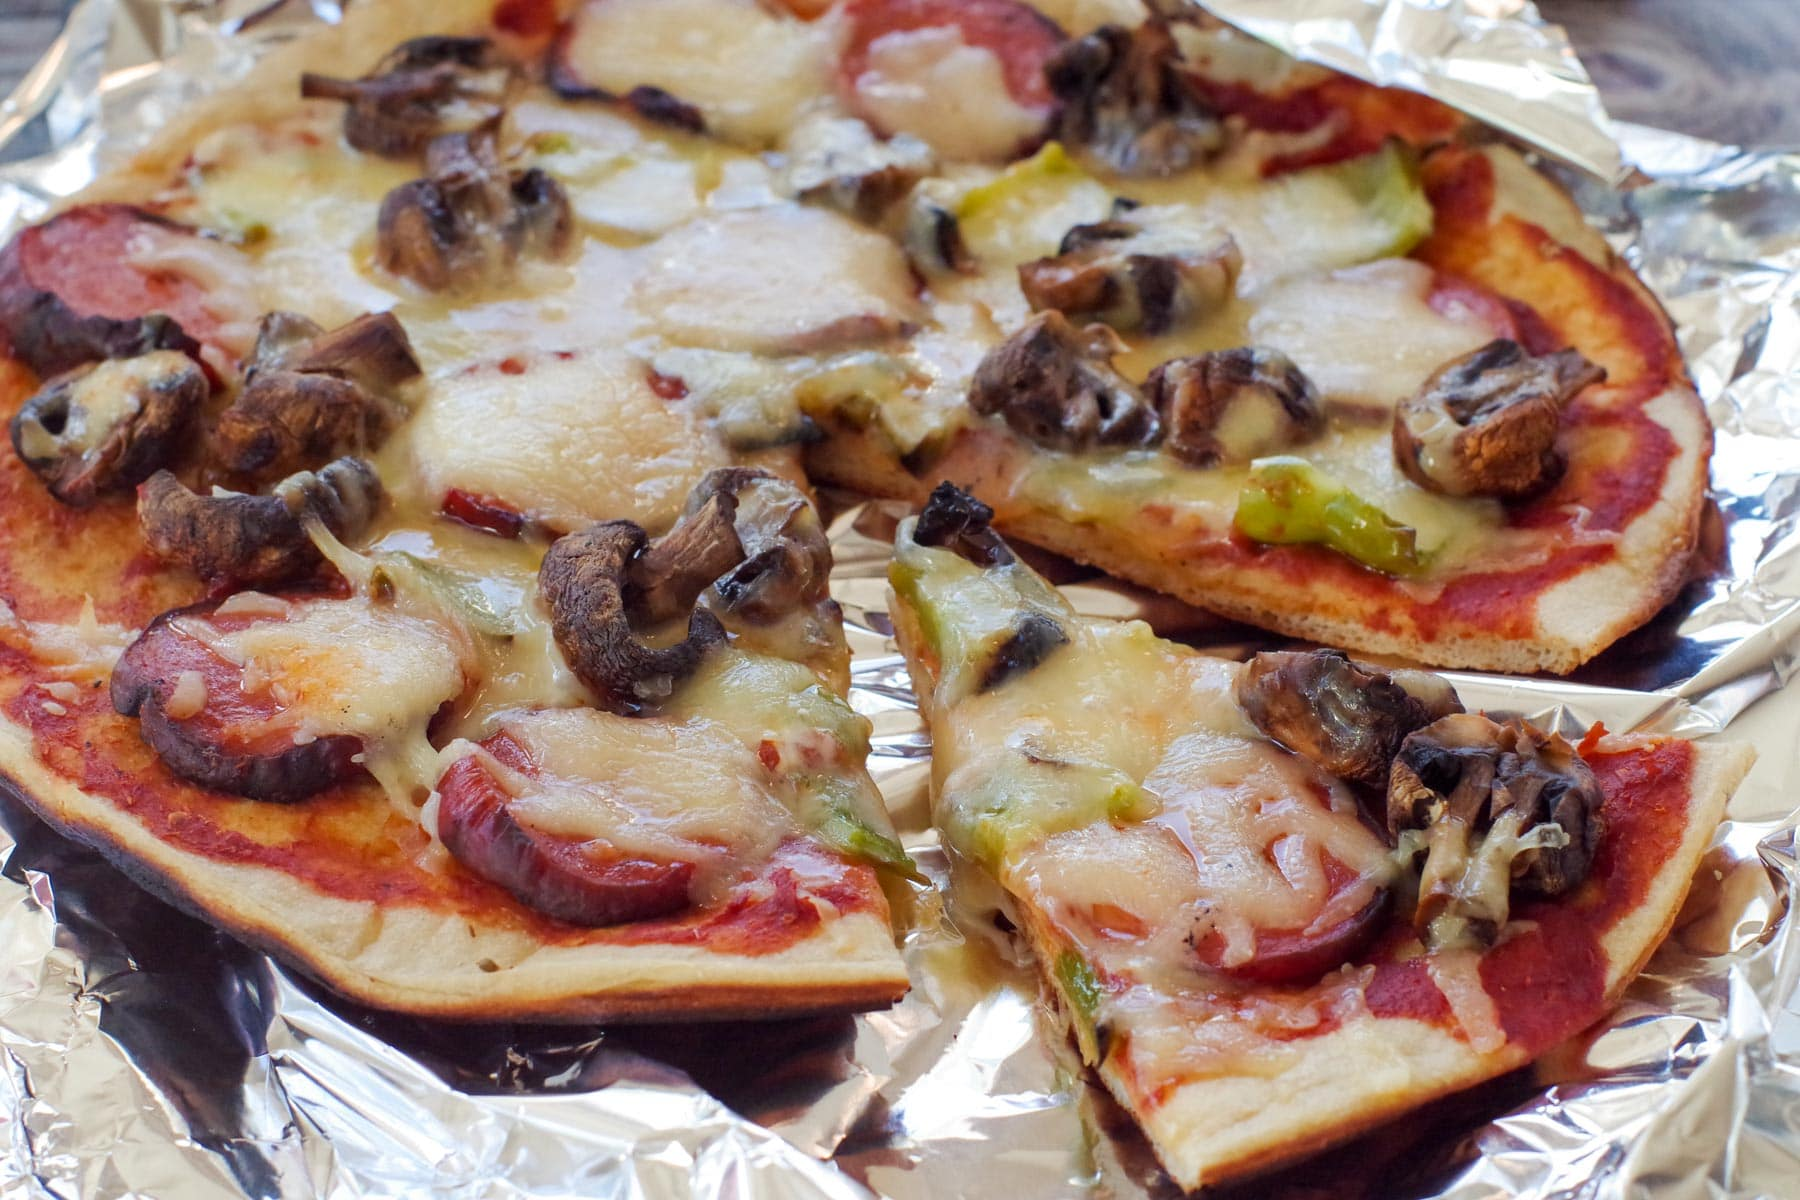 camping pizza on foil, with a slice removed